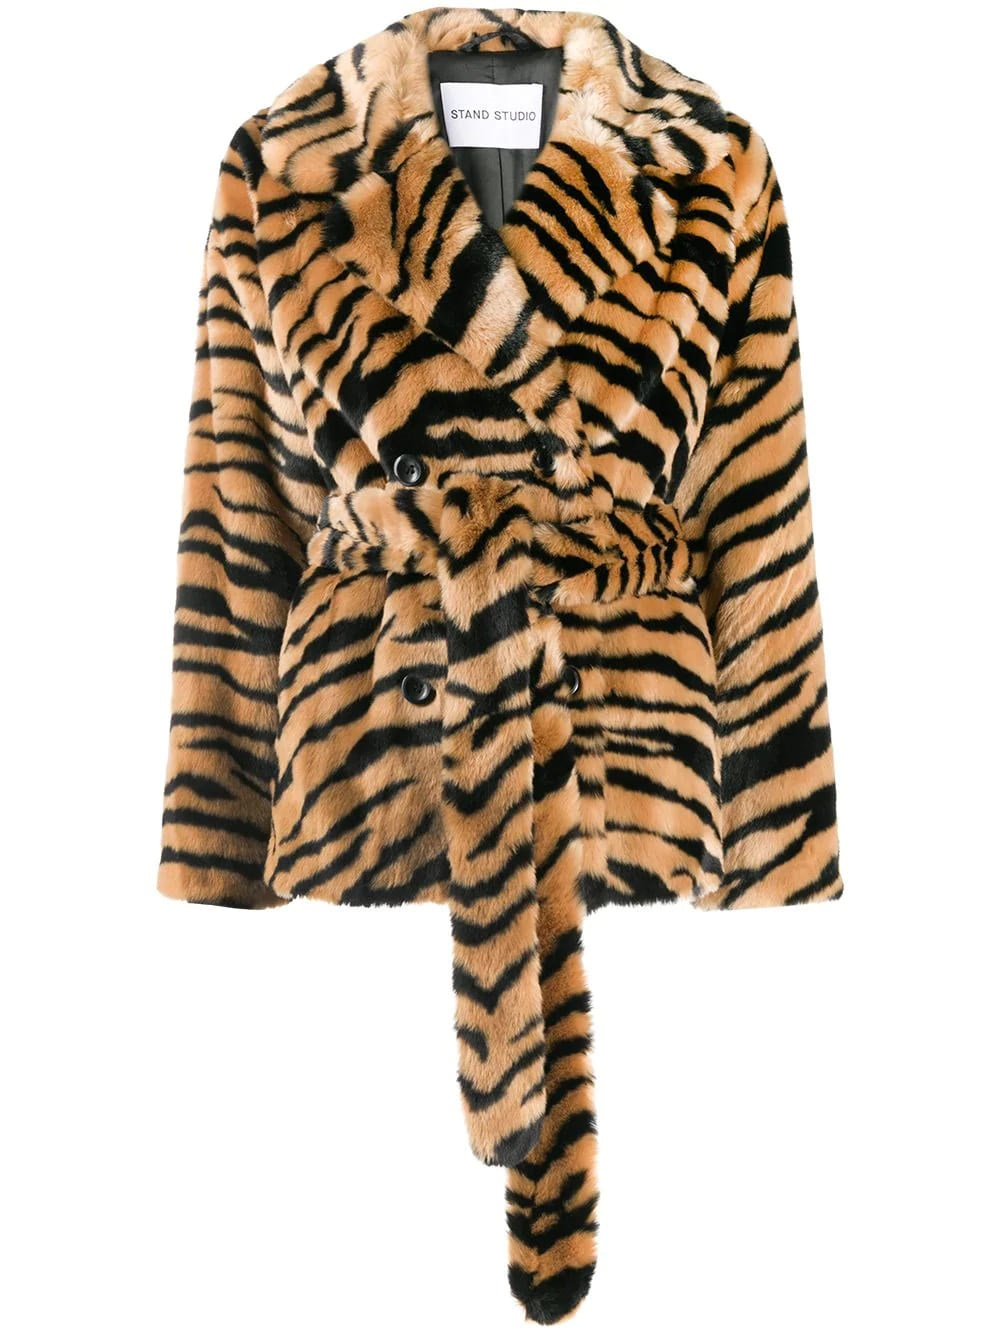 STAND STUDIO Faux Fur Belted Coat